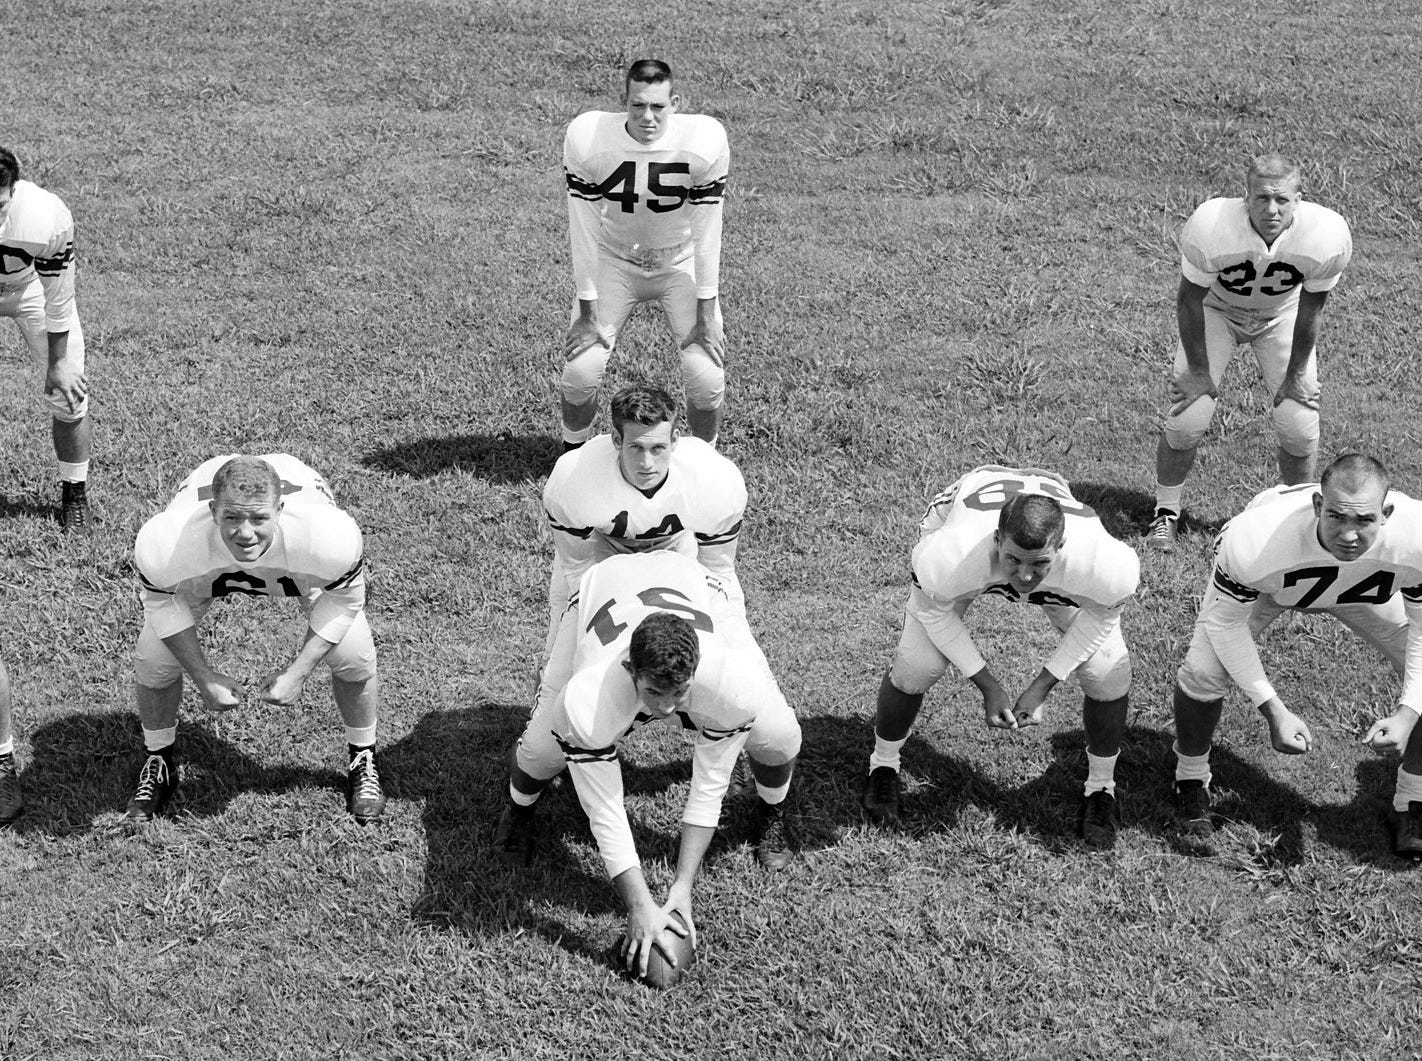 The Memphis State Tigers line up in the new Split-T formation they will use in the upcoming season on 11 Sep 1955.  The Tigers had previously employed the Single Wing formation.  The differences in the formations deal with the spacing between the linemen and the arrangement of the backs.  Lined up in the new formation are (Linemen from Left) David Strickland, Joe Billings, Cotton Clifford, Charles Scholes, John Meibaum, Bob Hazlett and Jerry Christopher.  Backs include quarterback Andy Nelson and (From Left)  Larry Wright, Bobby Brooks and Gerald Bush.  The Tigers first game will be against Trinity University of San Antonio on Sept. 24 at Crump Stadium.